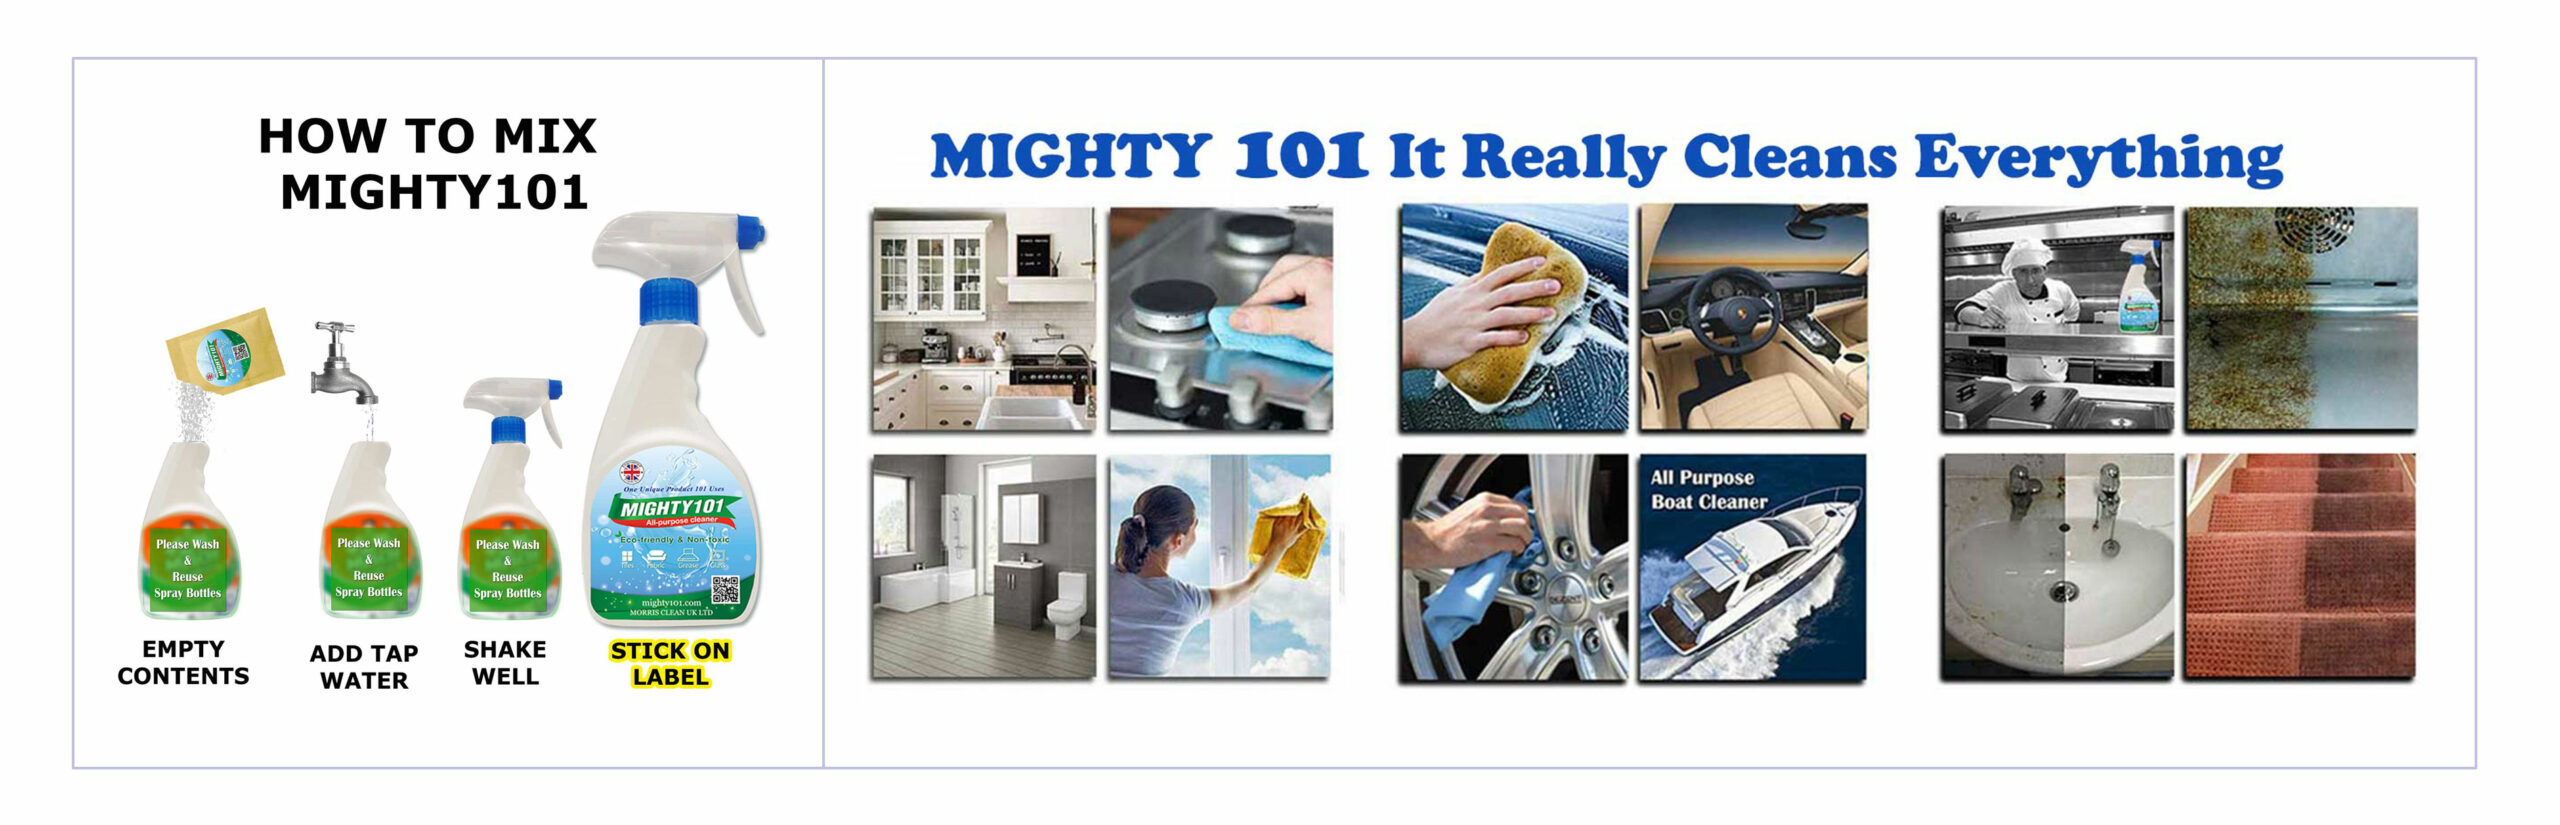 TripleClicks-Store-Mighty101-All-Purpose-Cleaner